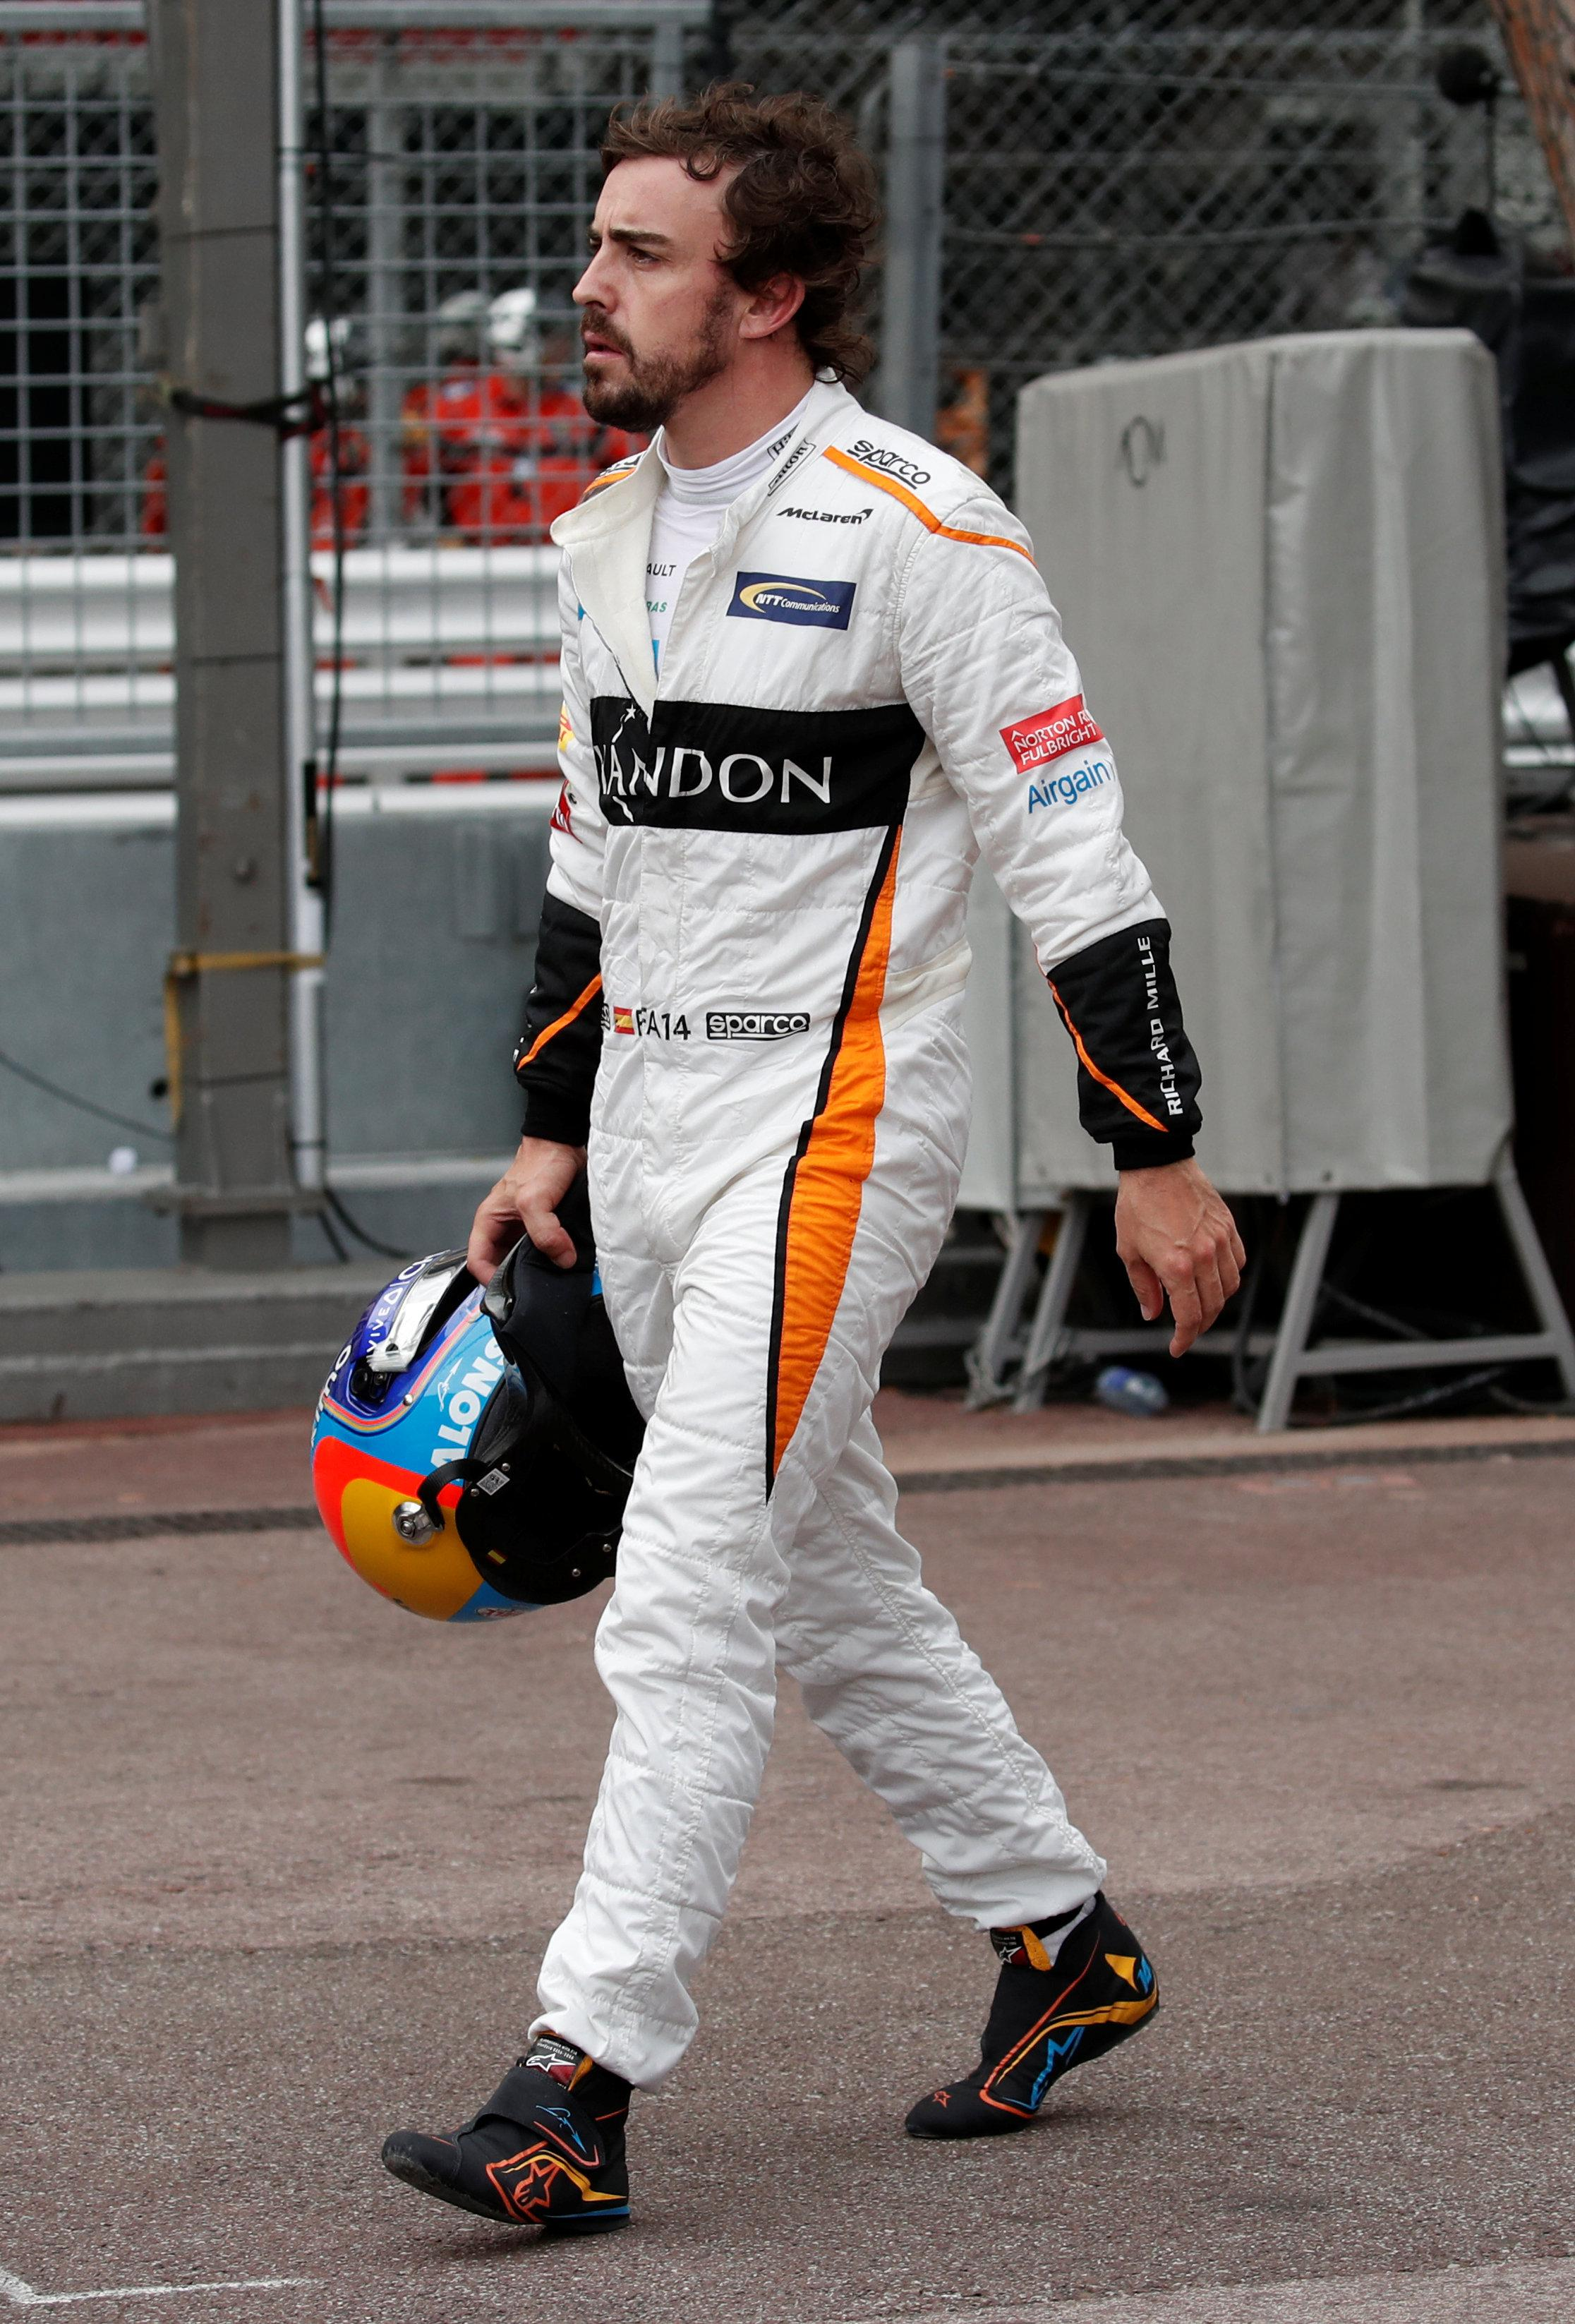 Fernando Alsonso joining the series would be a huge coup for the sport